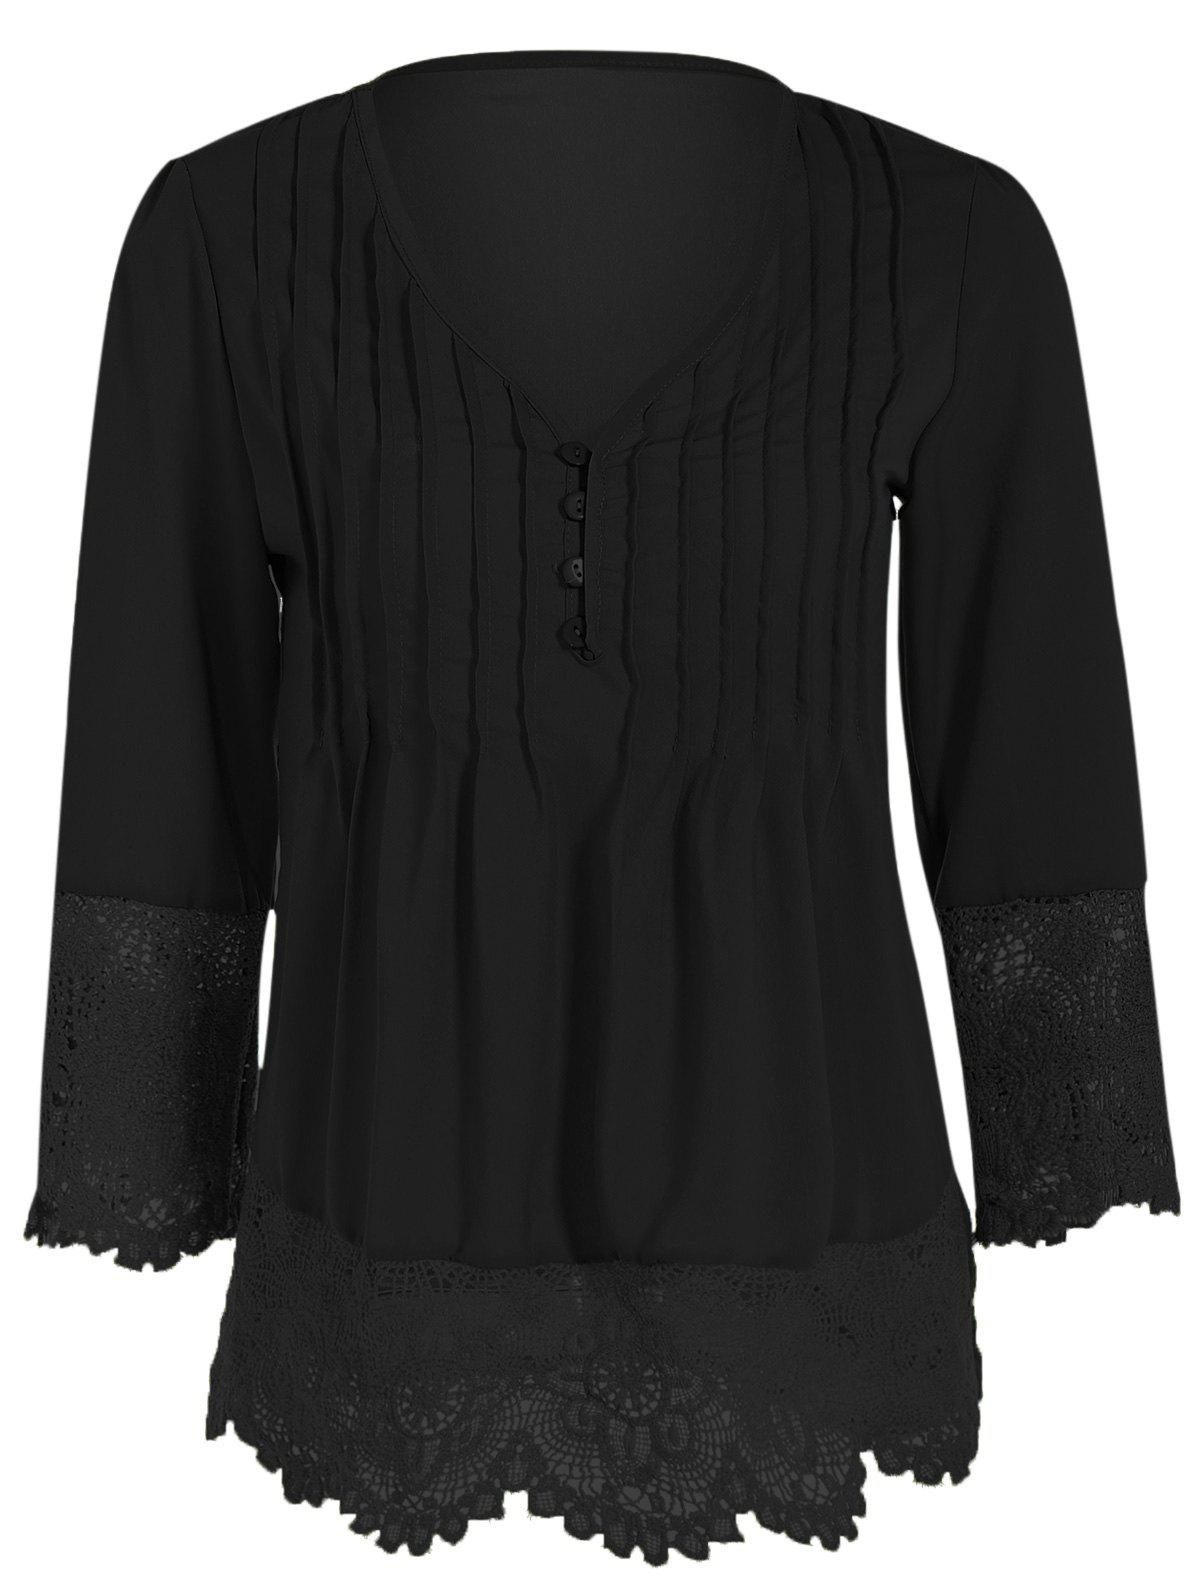 Buy Asymmetric Crochet-Trimmed Blouse BLACK